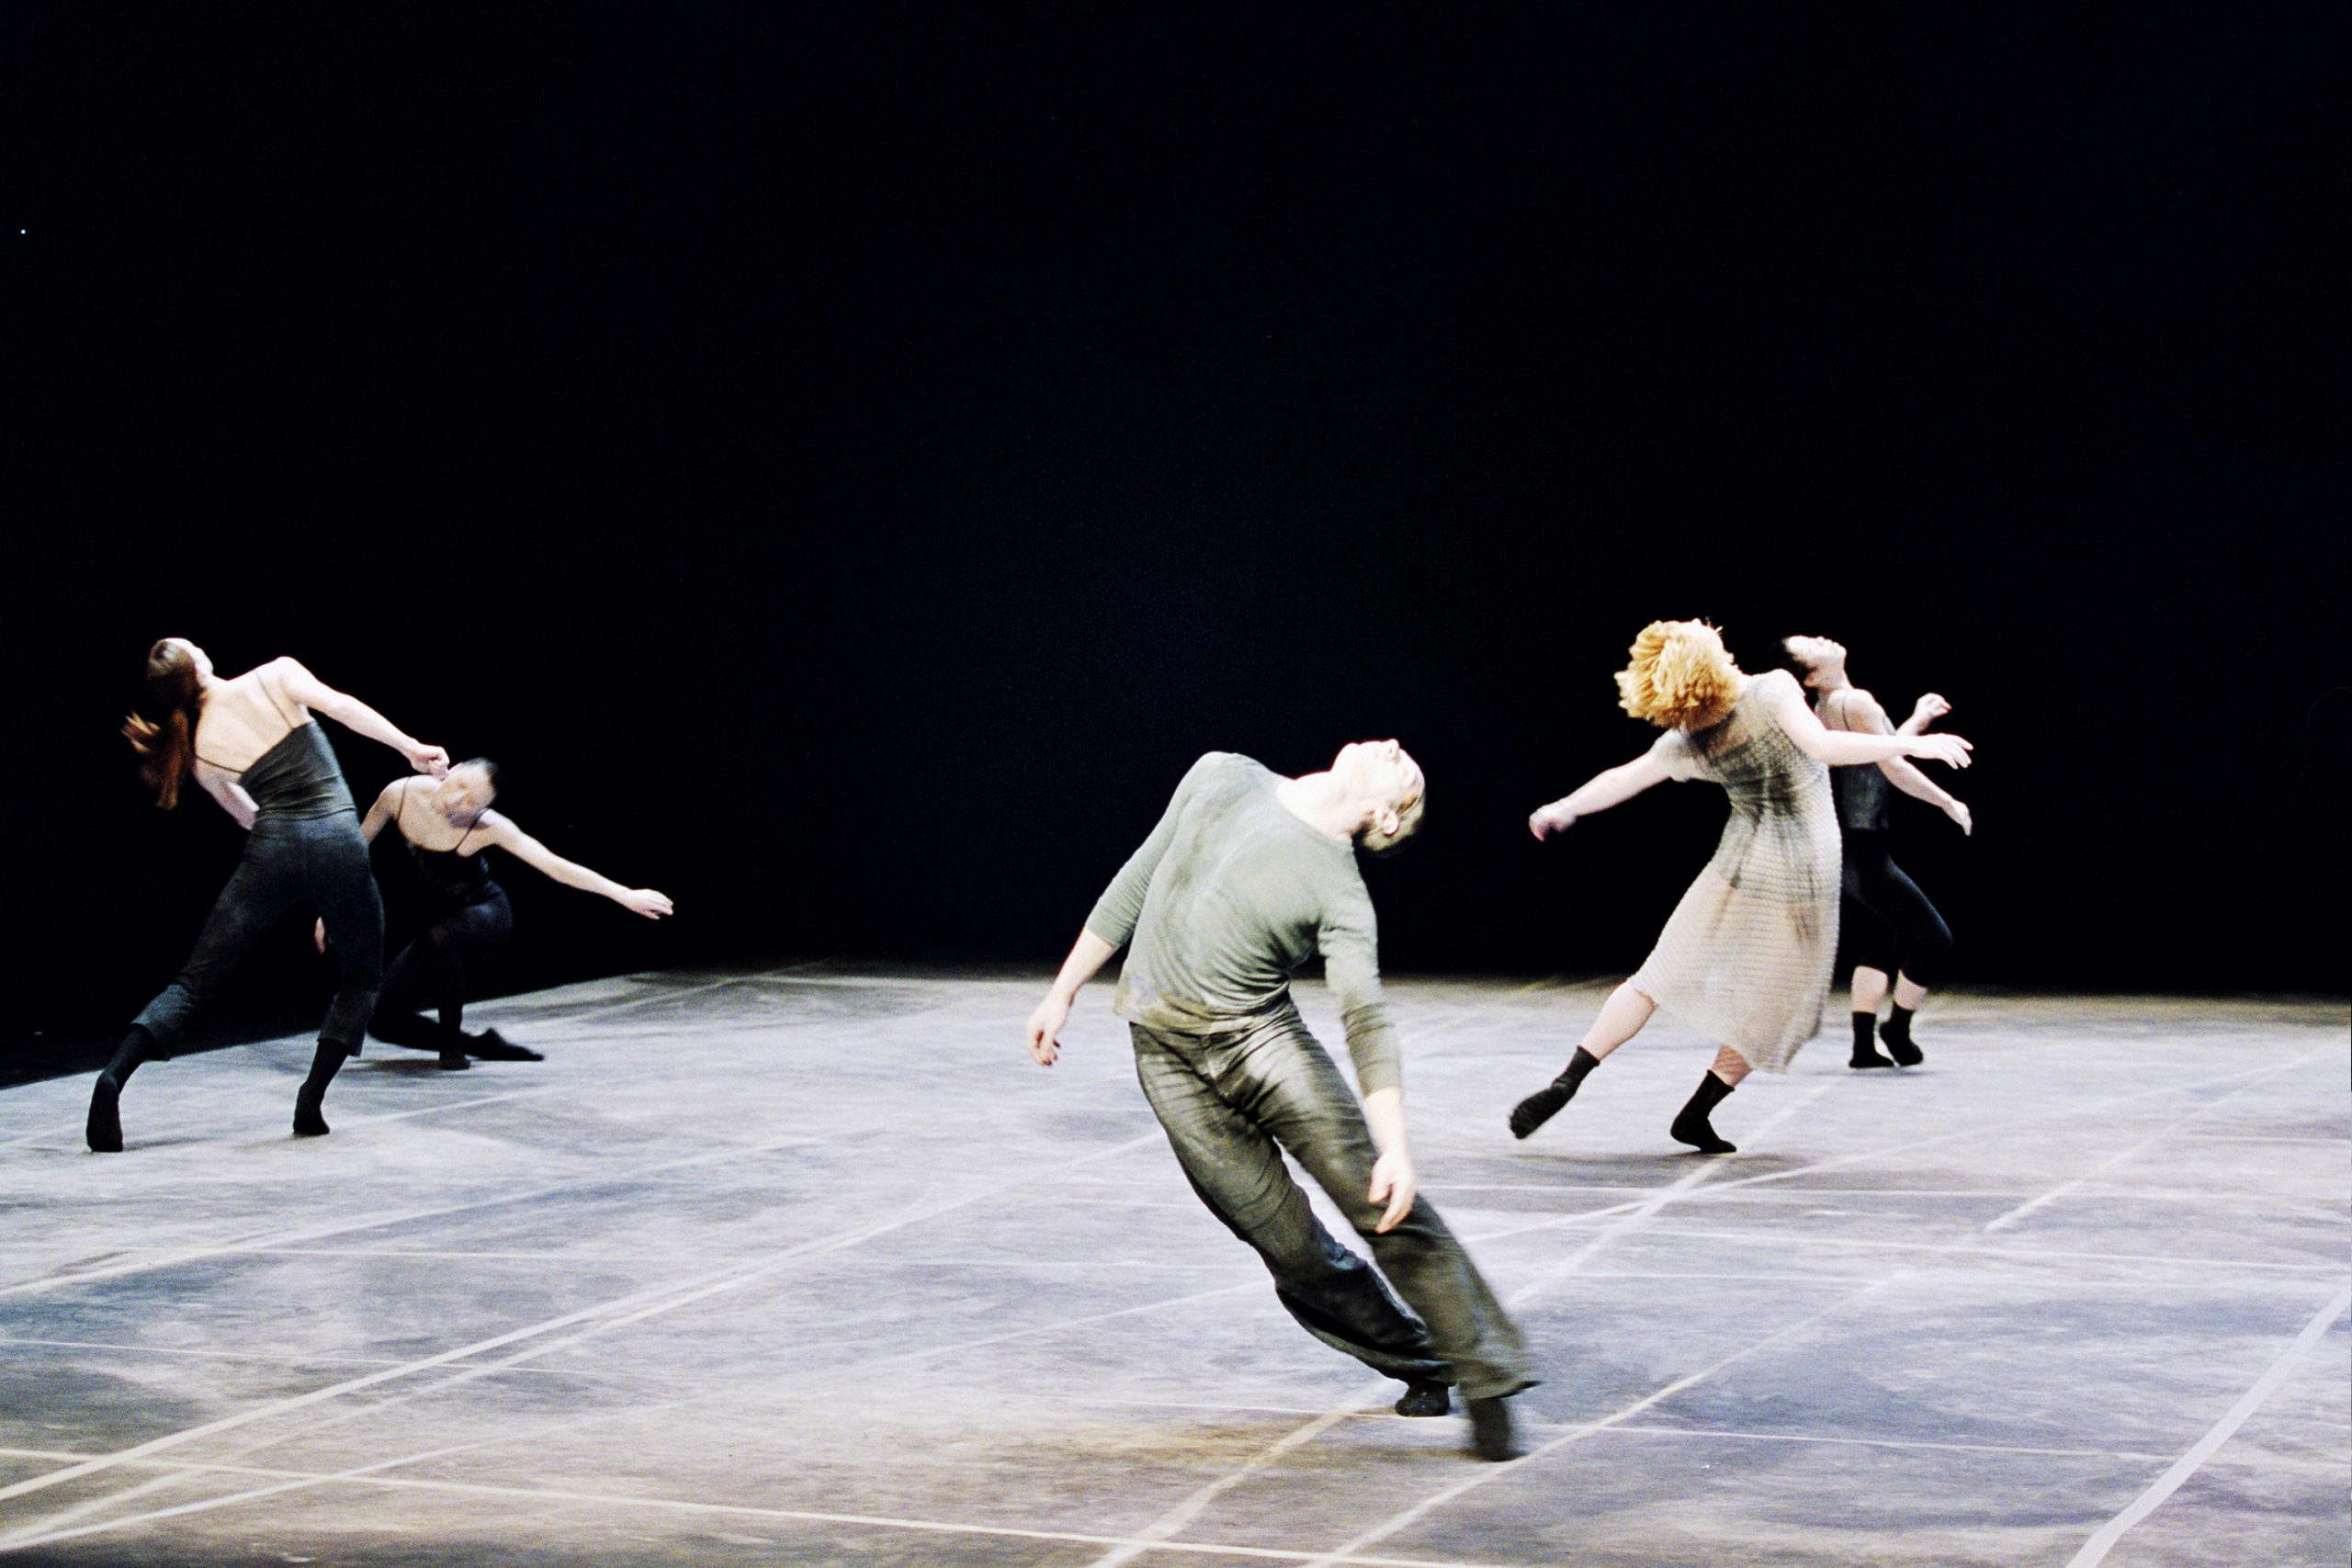 A moment from Rite of Spring, one of the dance pieces presented by renowned choreographer Shen Wei Saturday 9/23.